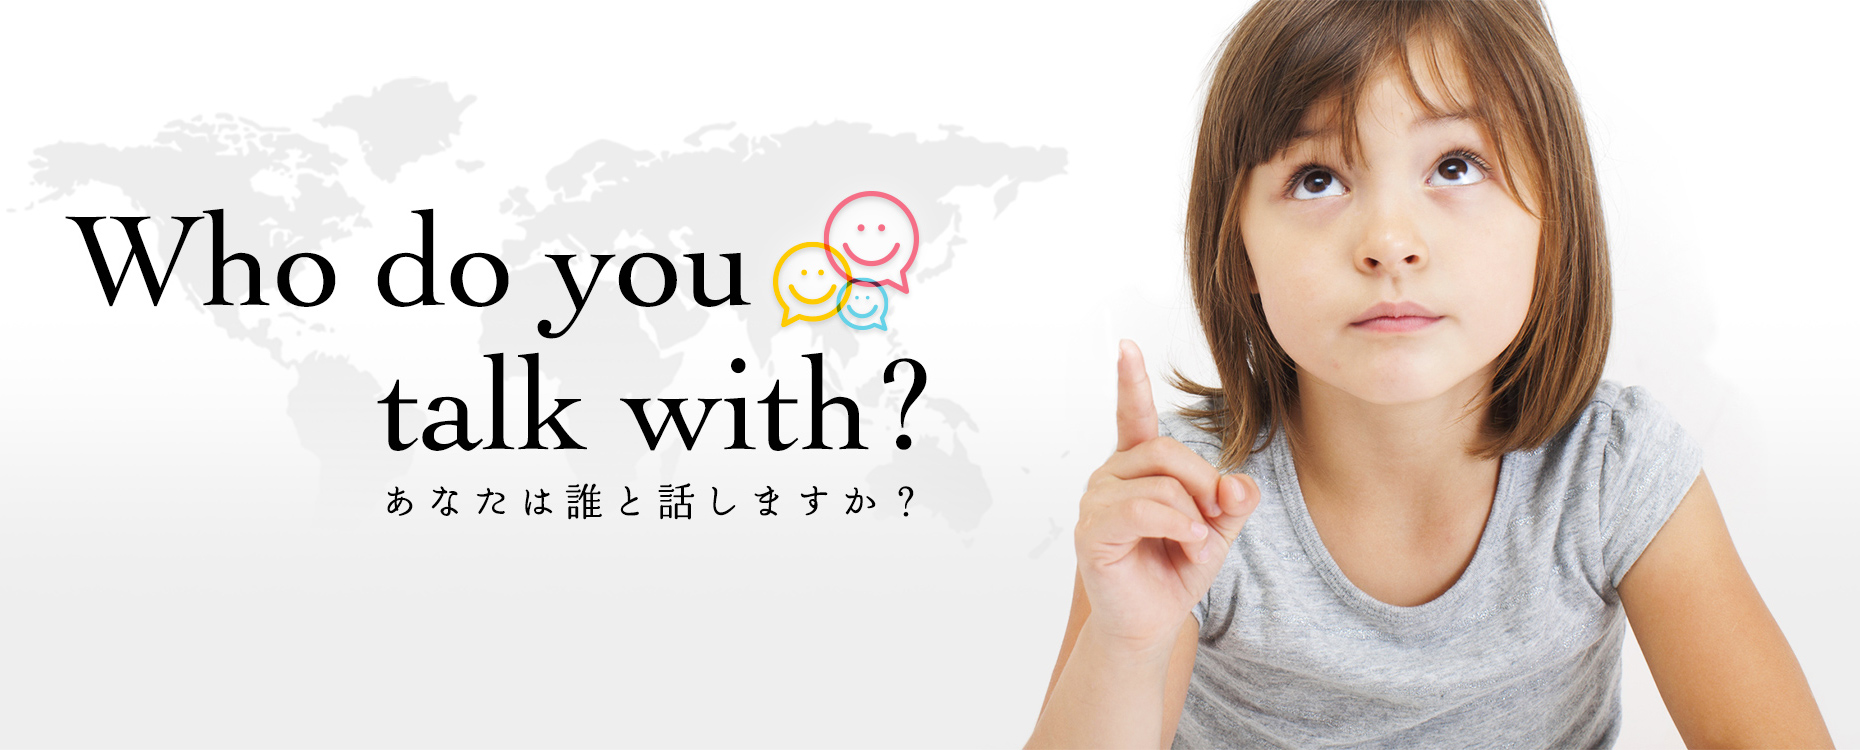 Who do you talk with? あなたは誰と話しますか?